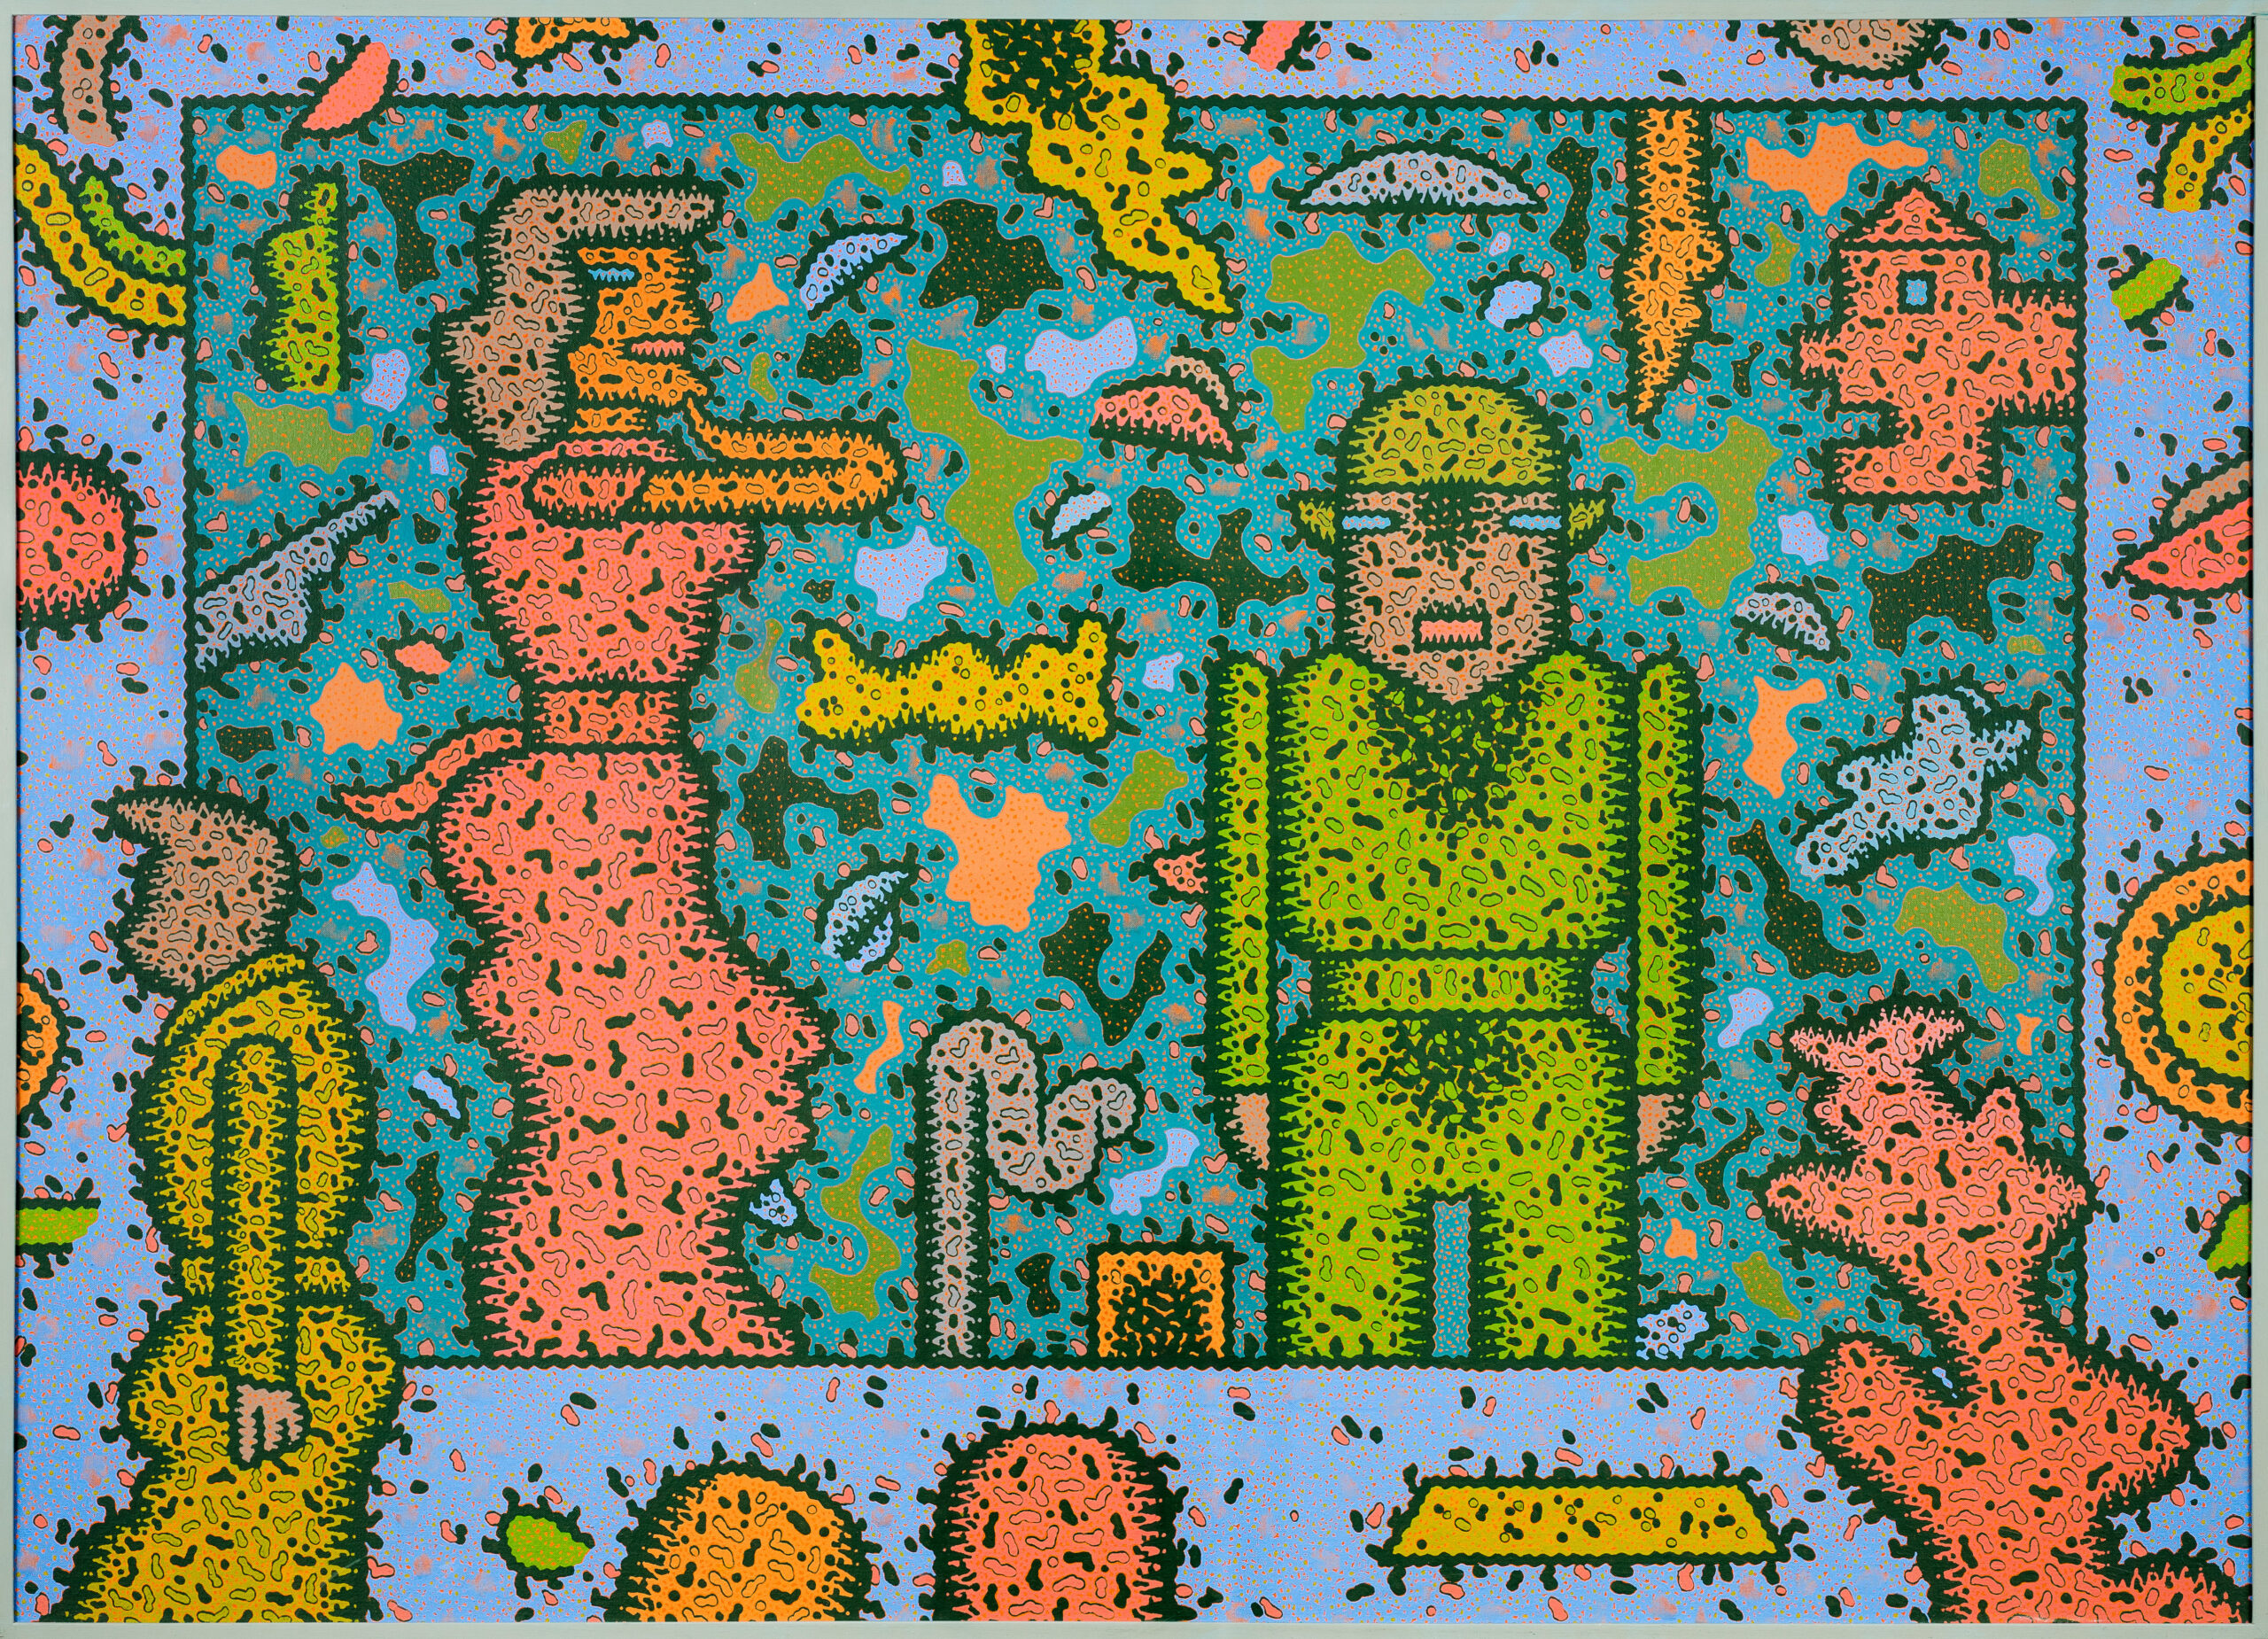 Arbitrary Approach, a 1983 painting by Ray Yoshida, centers on a woman in a pink dress and a man in a bright green space suit..